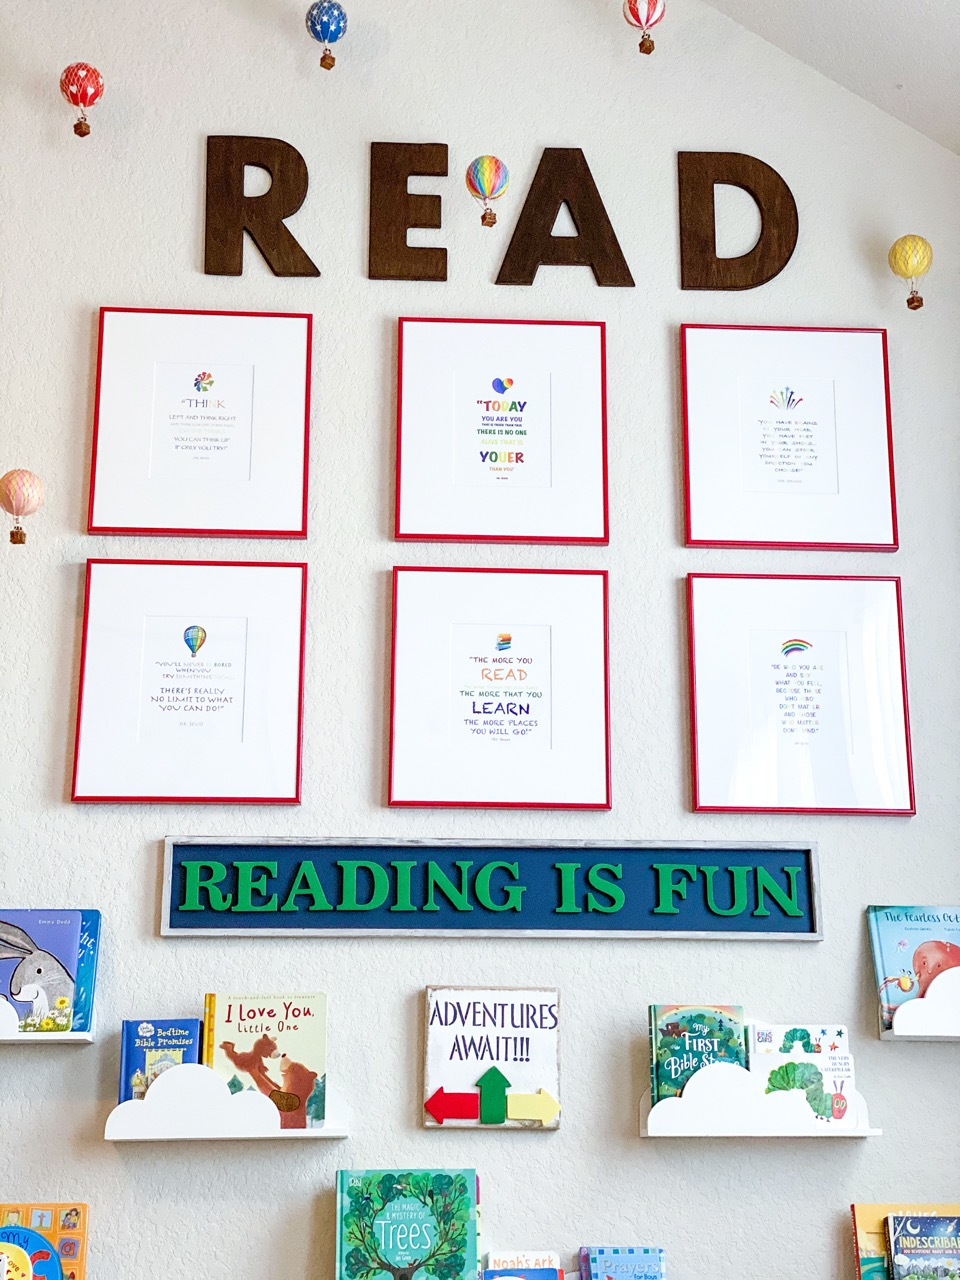 3x2 red frames in reading room